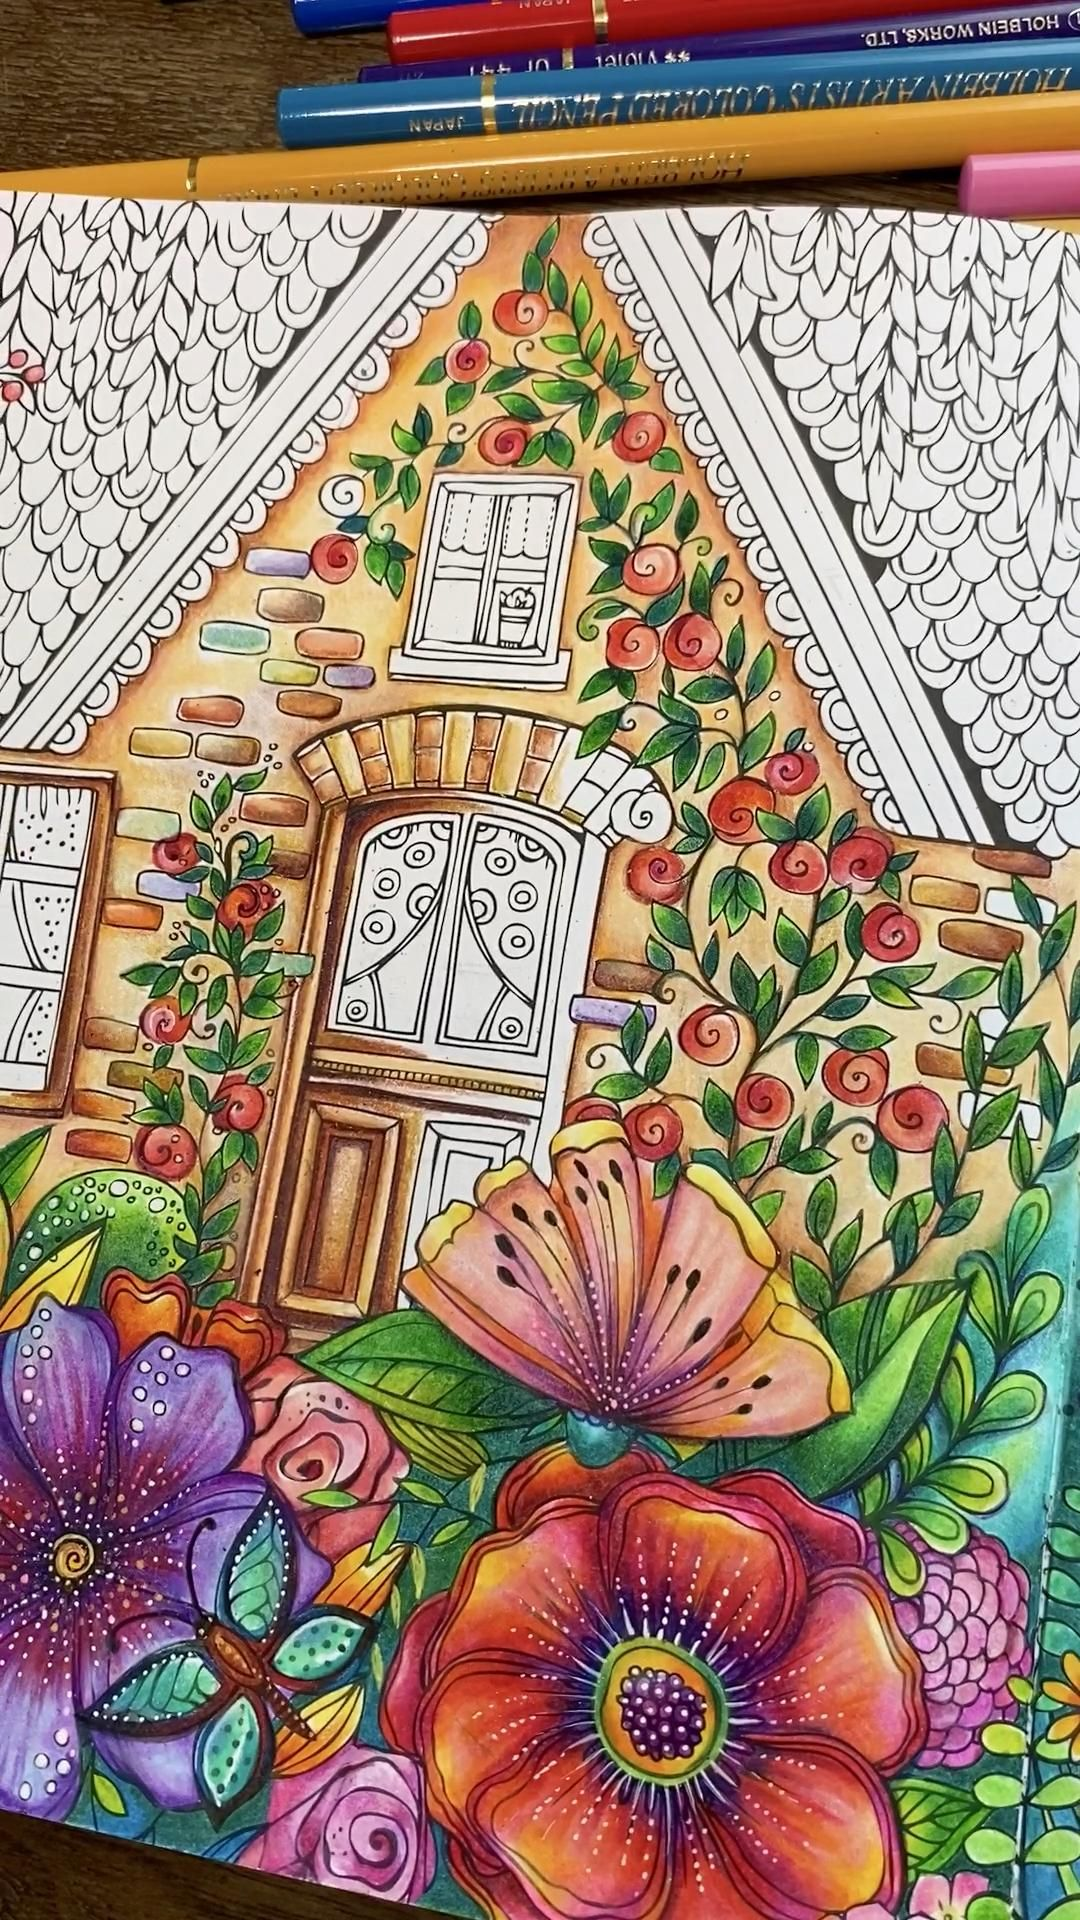 #meinsommerspaziergang #coloring #coloringforadults #lovetocreate #flowers #summerfeels #vacation #ritaberman #coloredpencildrawing